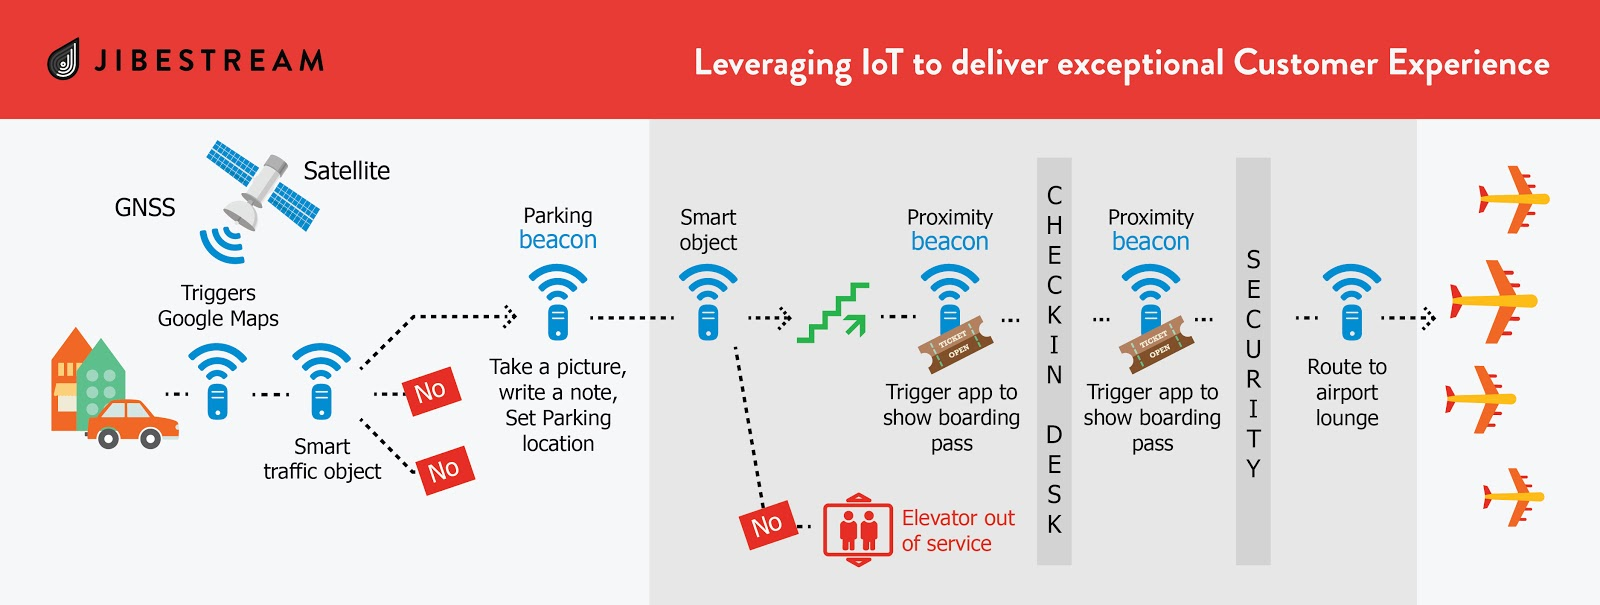 IoT Delivers Exceptional Customer Experience